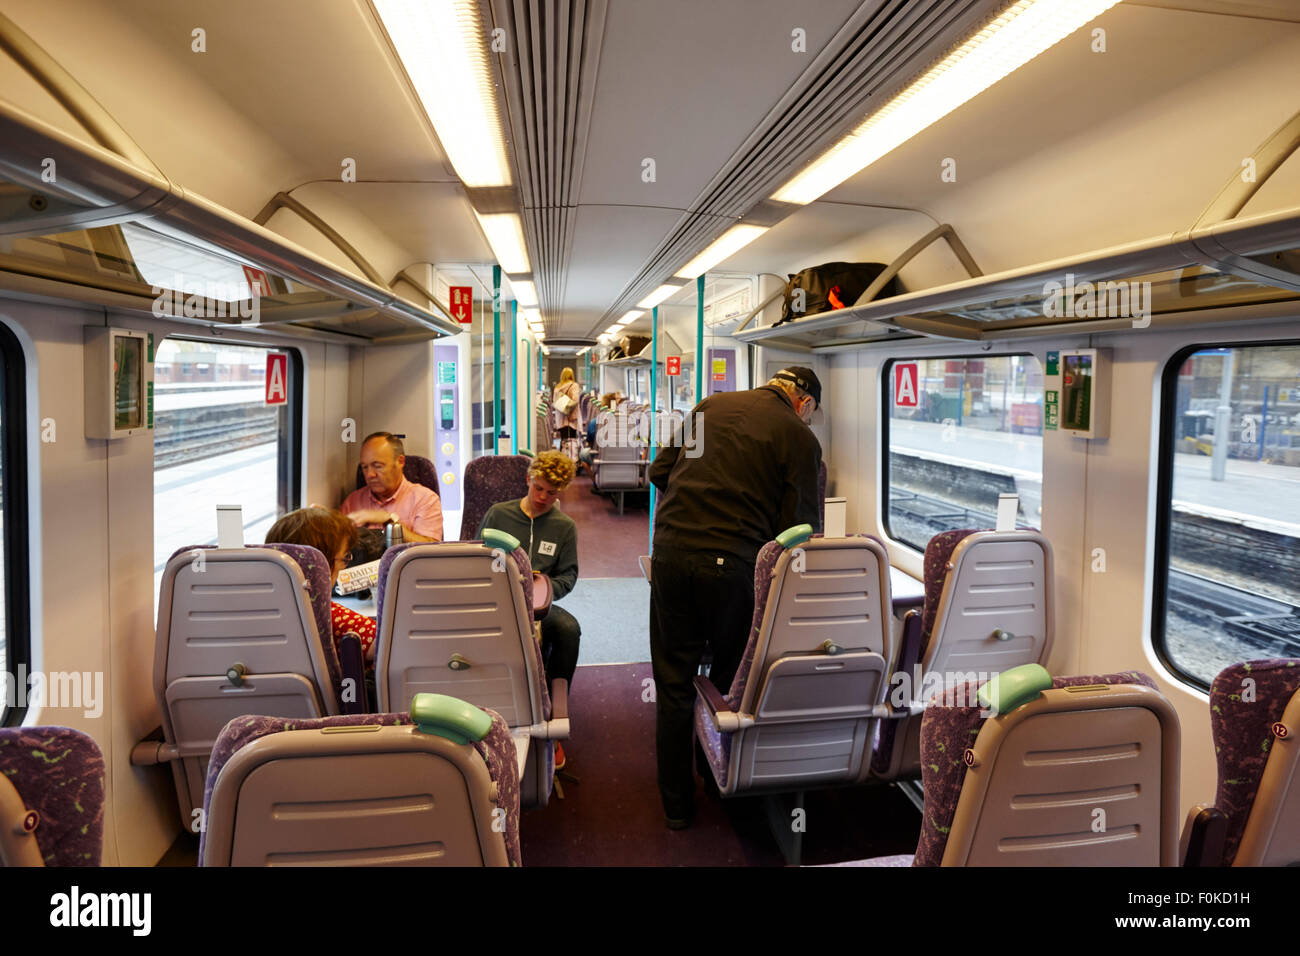 on board the trans pennine express Liverpool England UK - Stock Image